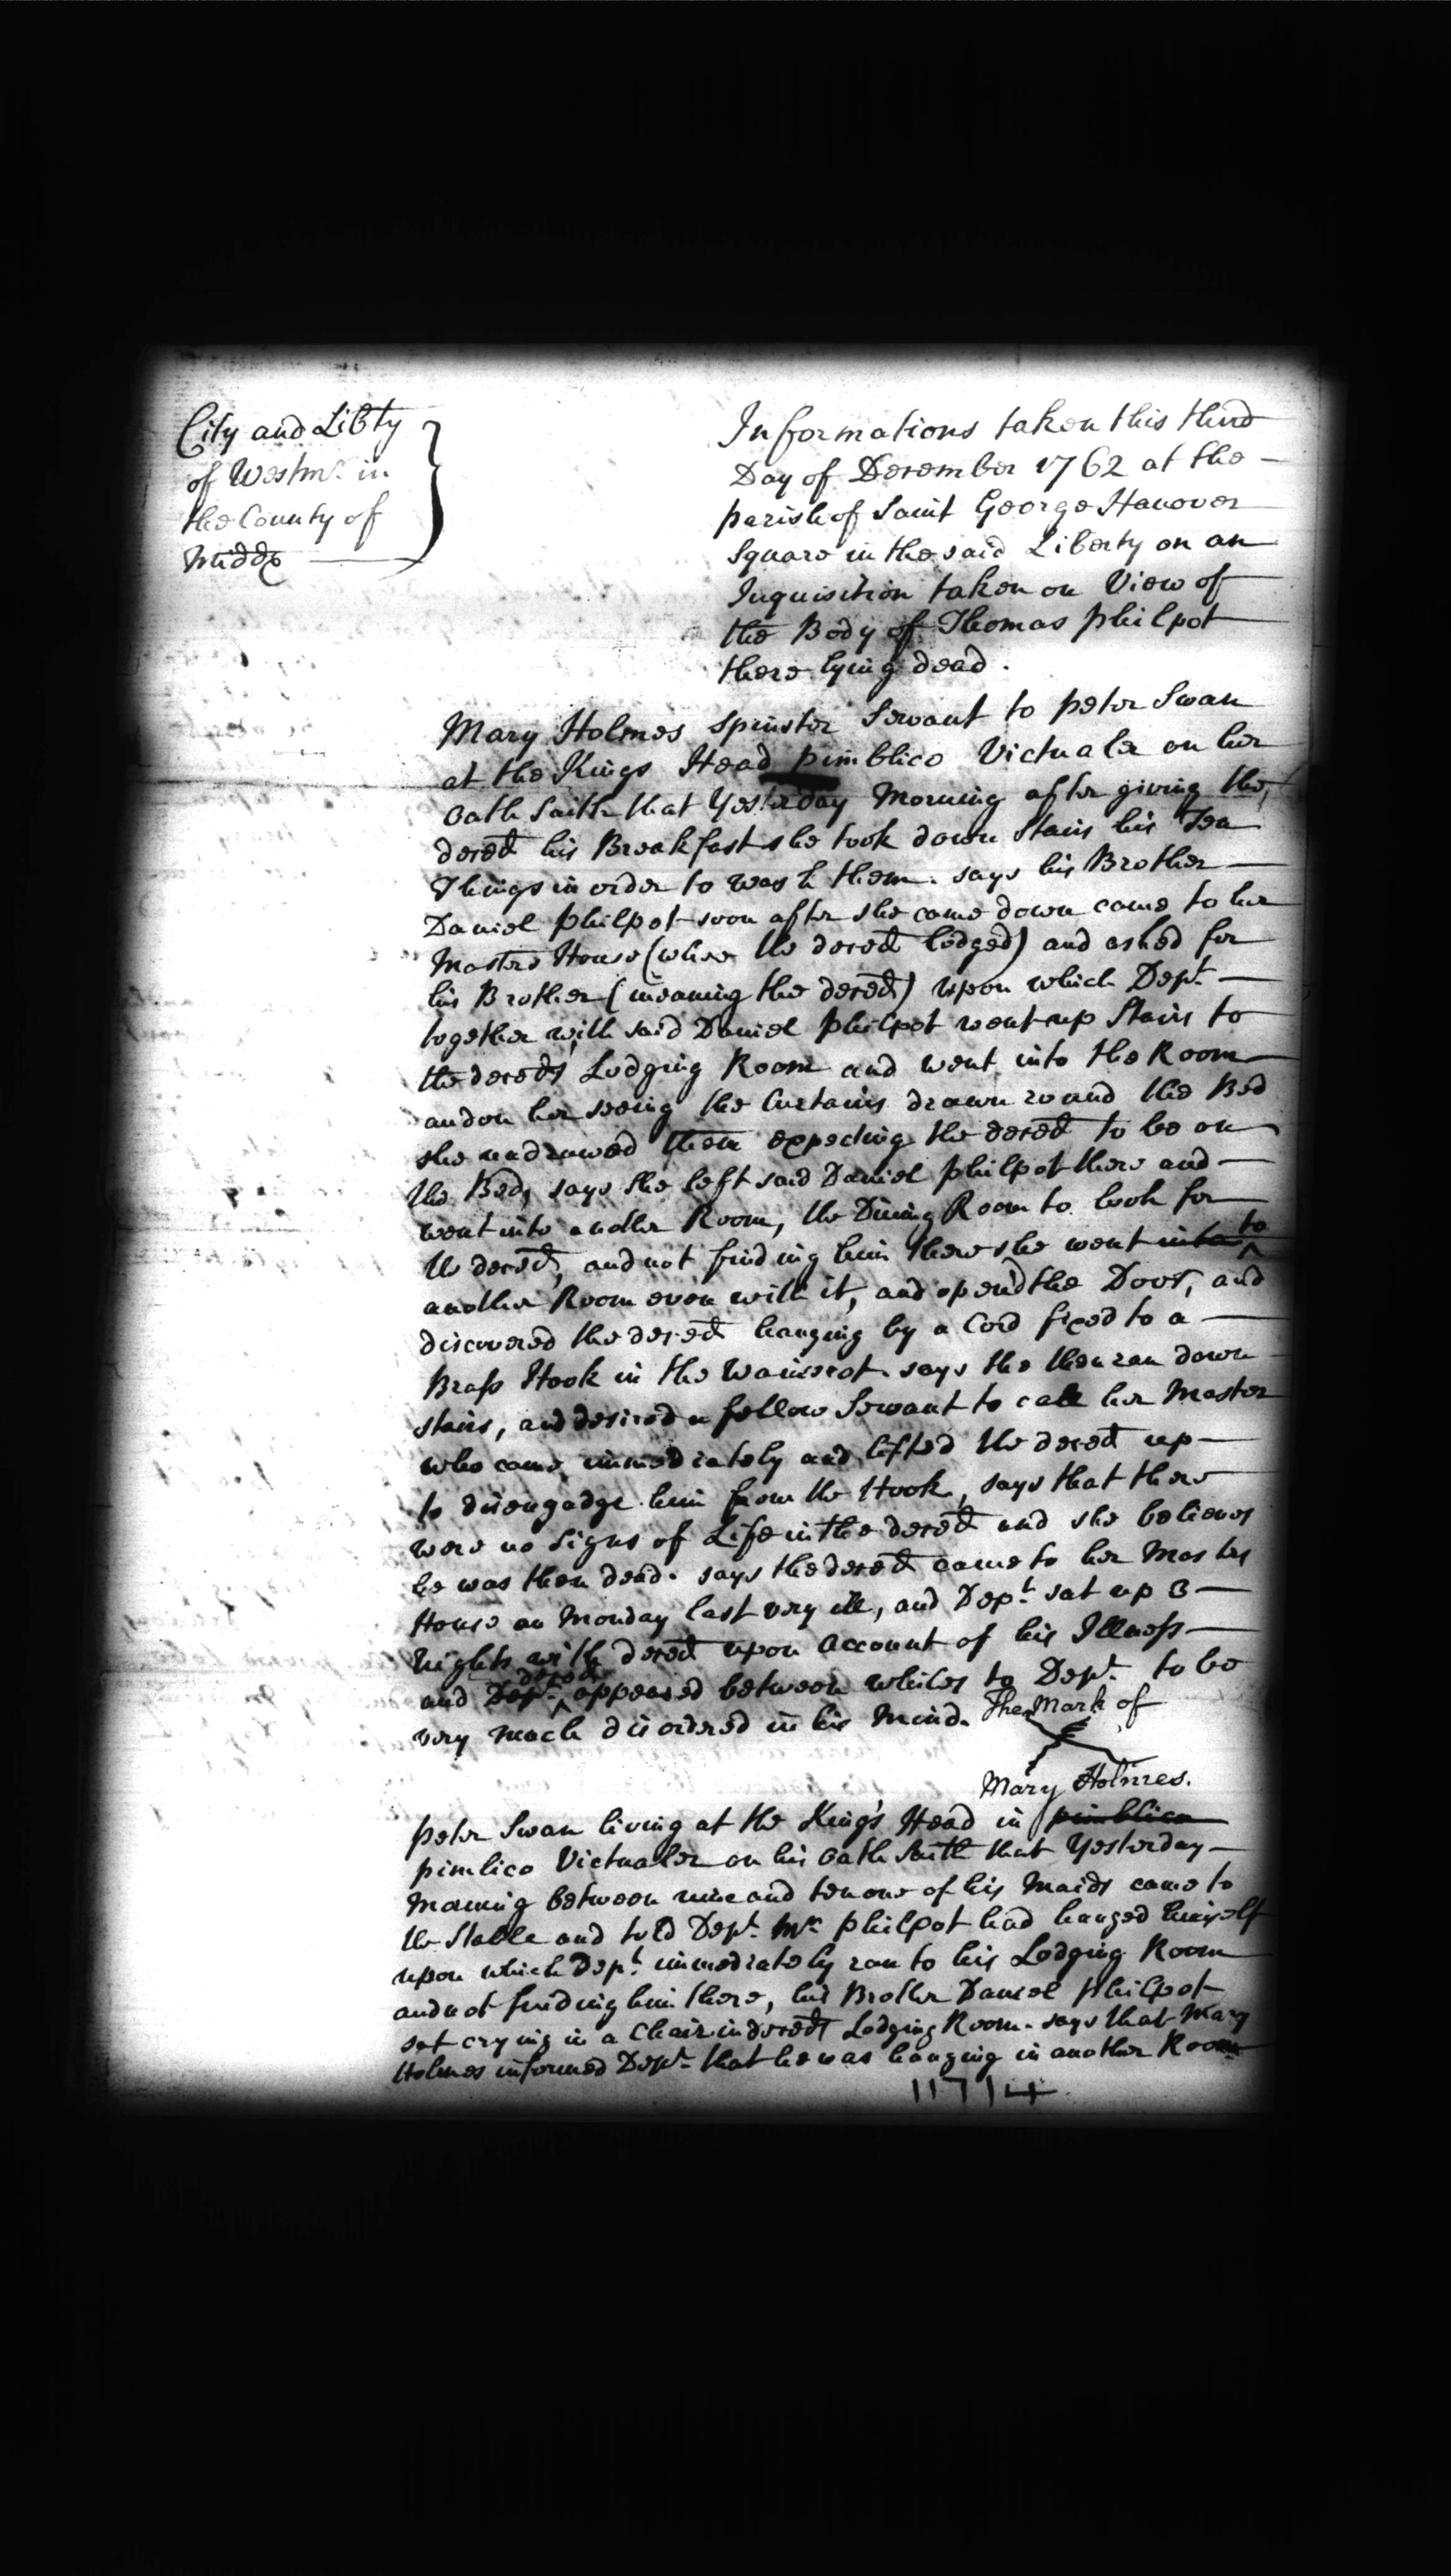 A deposition by Mary Holmes relating to the death of Thomas Philpot, 3 December 1762